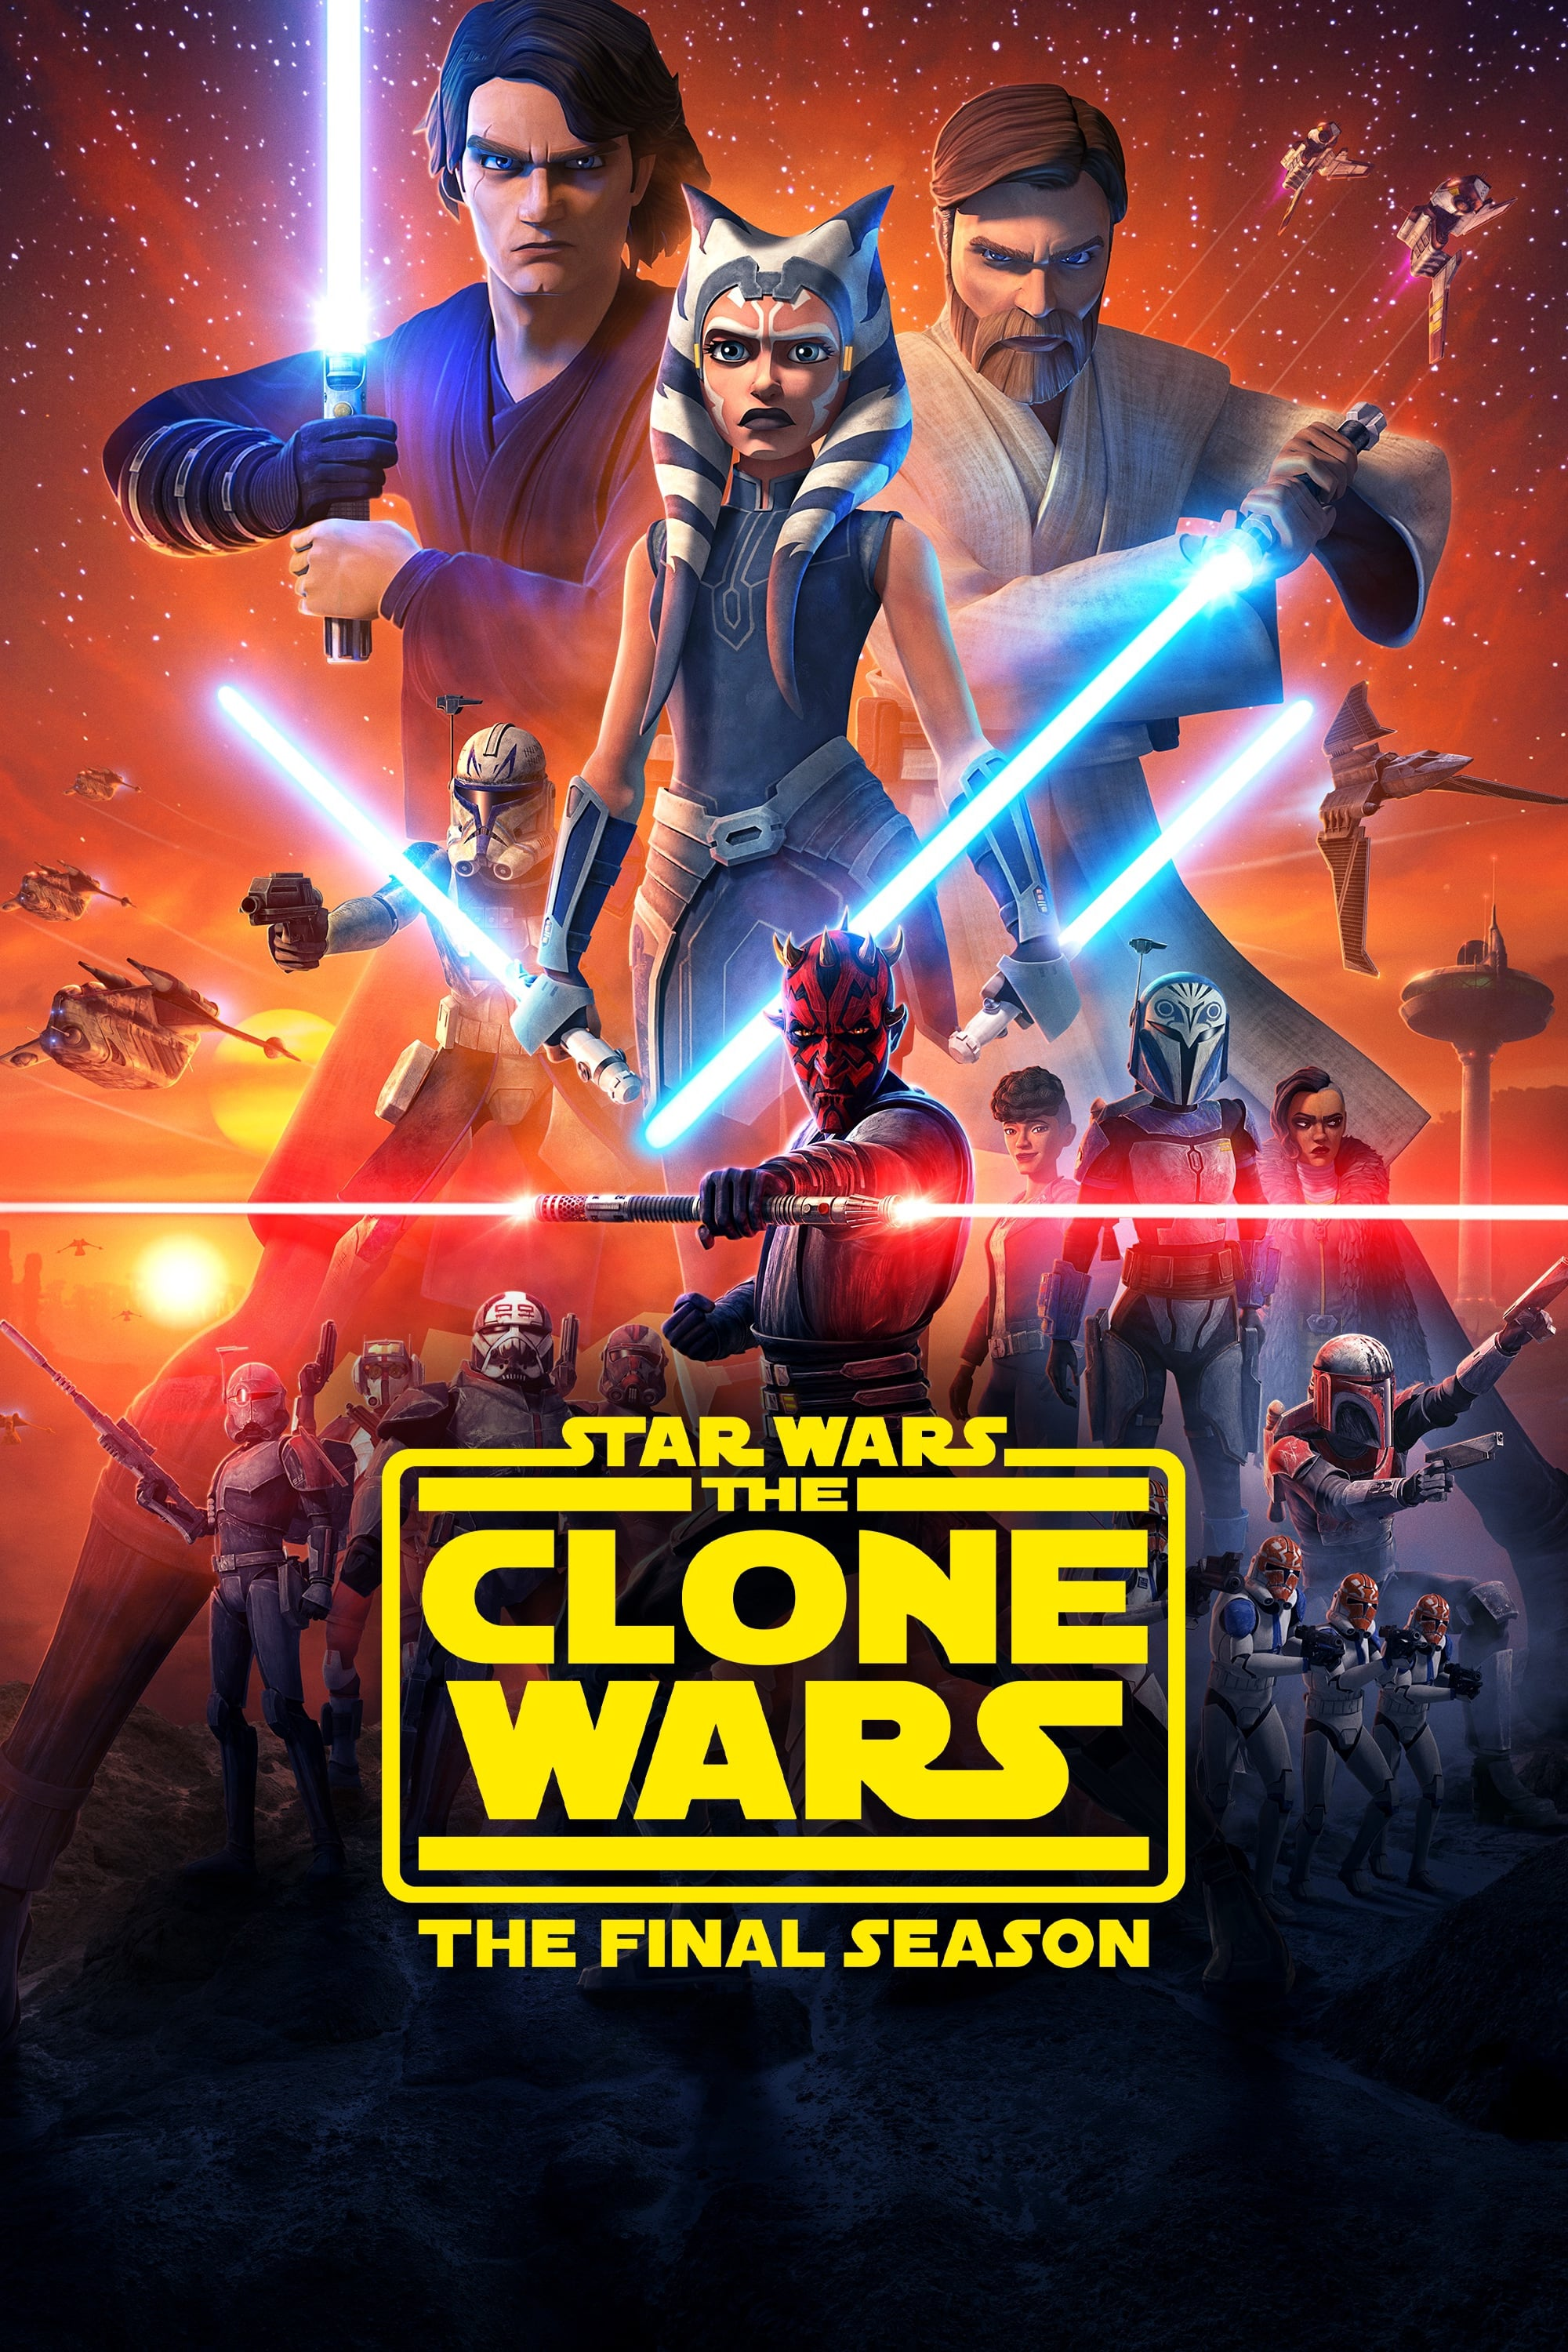 Star Wars: The Clone Wars Season 7